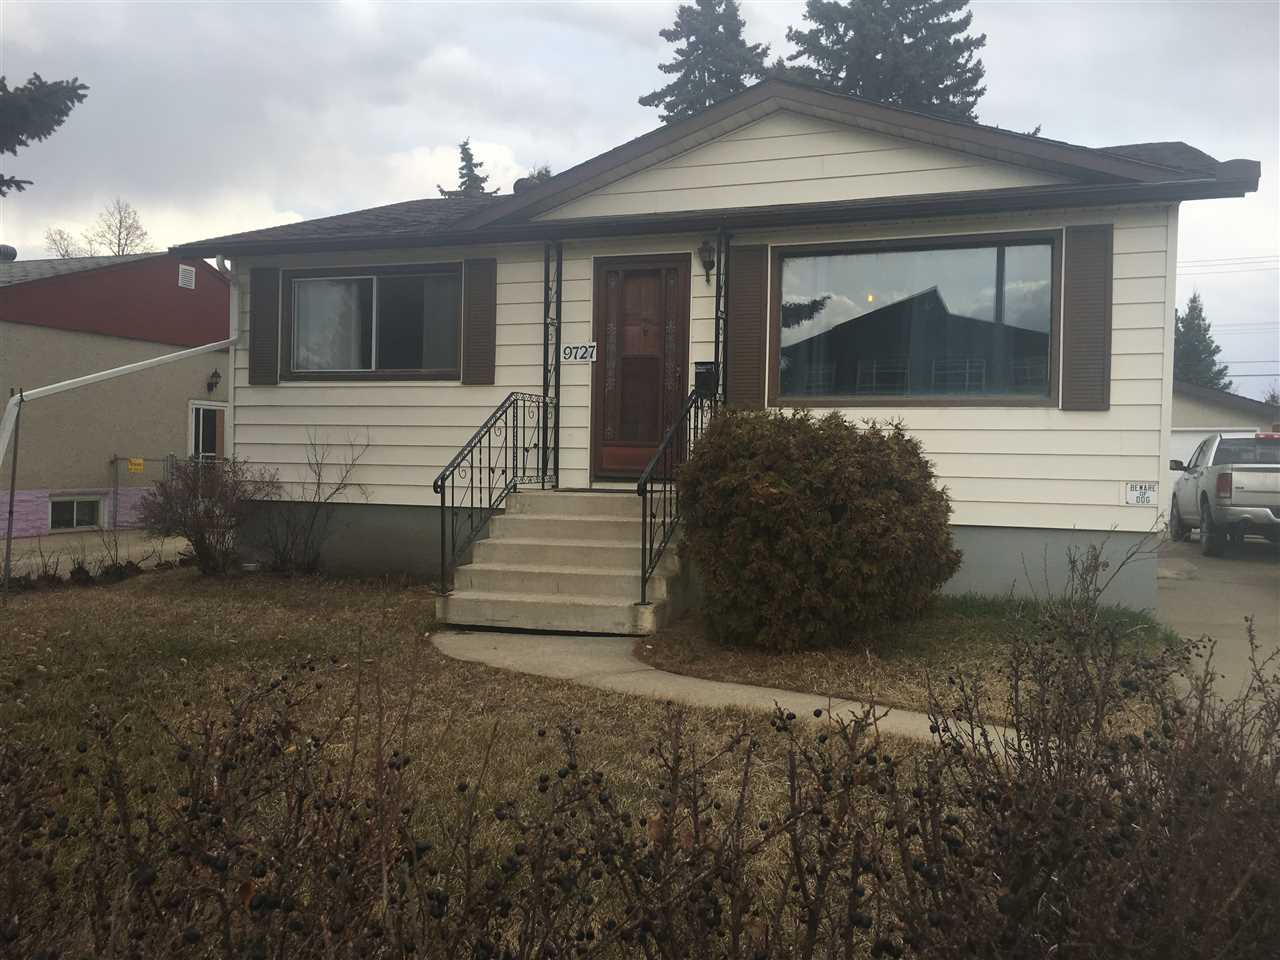 Perfect for the first time buyer or investor featuring a sub-dividable lot! Super solid bungalow with 4 bedrooms, 2 up 2 down. Kitchen features maple cabinets, and updated countertops. Living room has cove ceiling. New 100 amp electrical service and sump pump. Huge 50x165 lot enough room for 2 homes and still have a good sized yard! There is a storage shed, dog run, dog house, RV parking, front street access, lane access, fruit trees, mature trees, patio and side driveway. Oversized contractor garage with 220V wiring. Lighting over the workshop countertop and cabinets. Separate entrance has suite potential for up/down rental. Quick possession available, walk to all levels of schools including Jasper Place High and St. Francis. Short walk to indoor swimming and skating. Excellent public transportation.